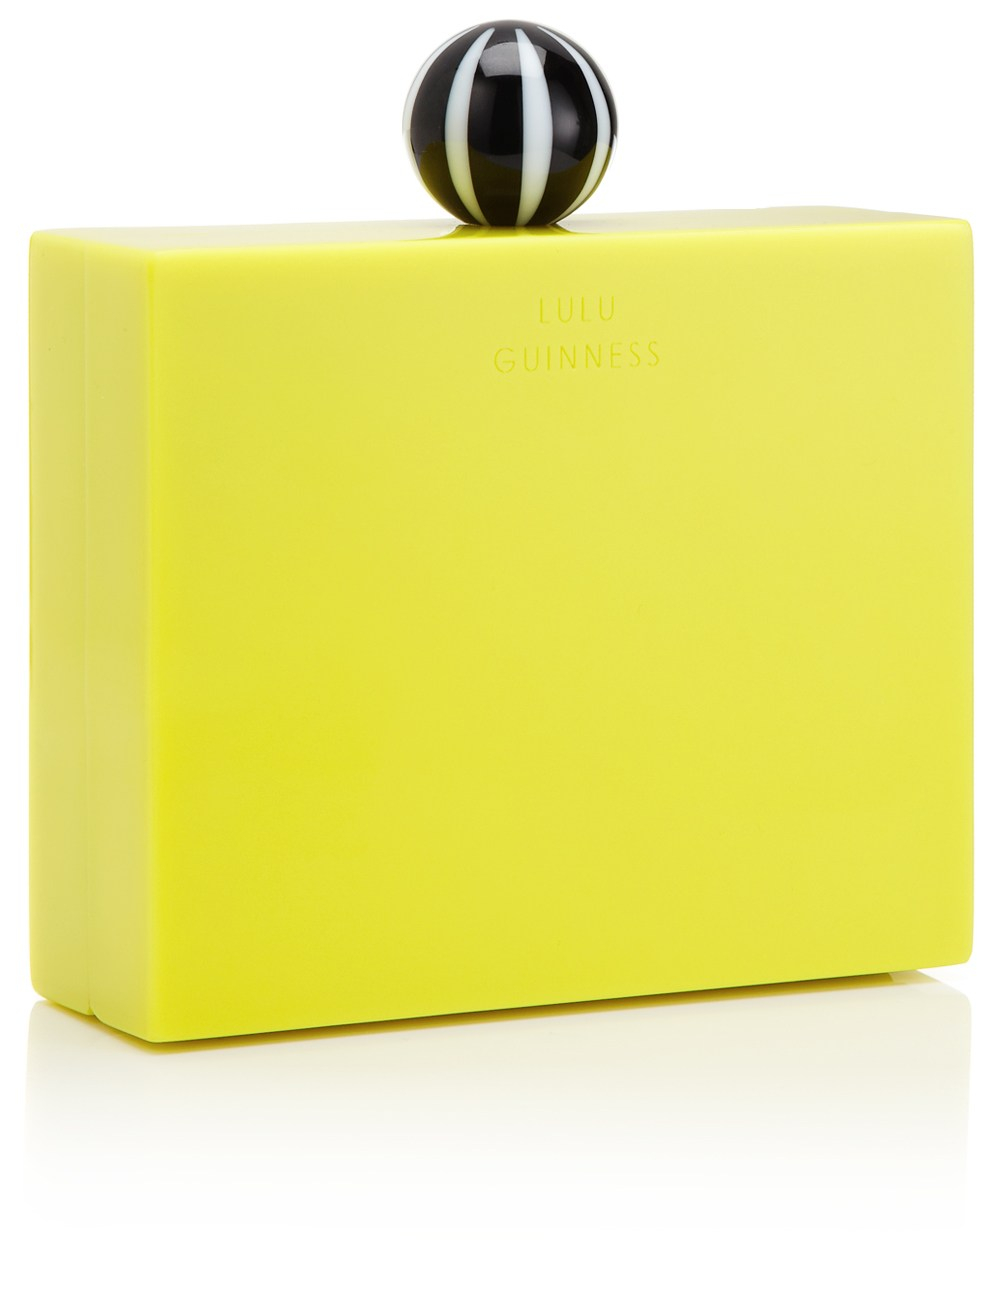 Lulu guinness Chartreuse Perspex Chloe Clutch in Yellow ...